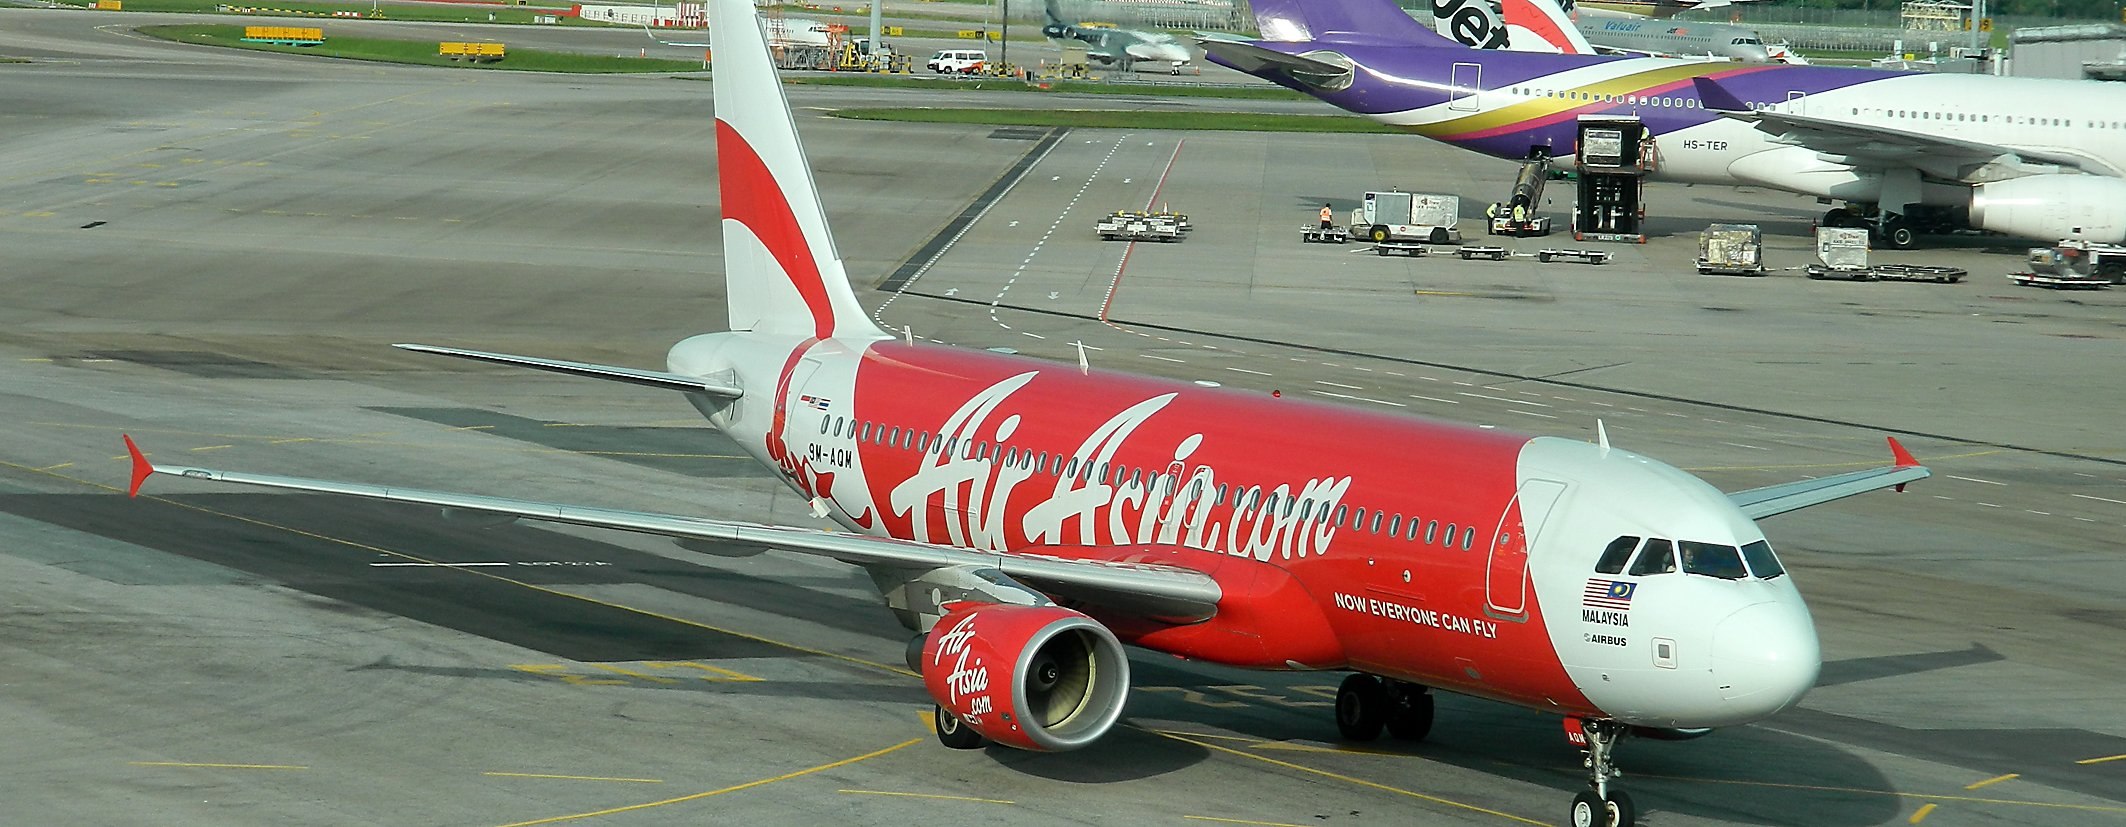 Air Asia Flieger. Foto: Exbir Travel, C. Maskos